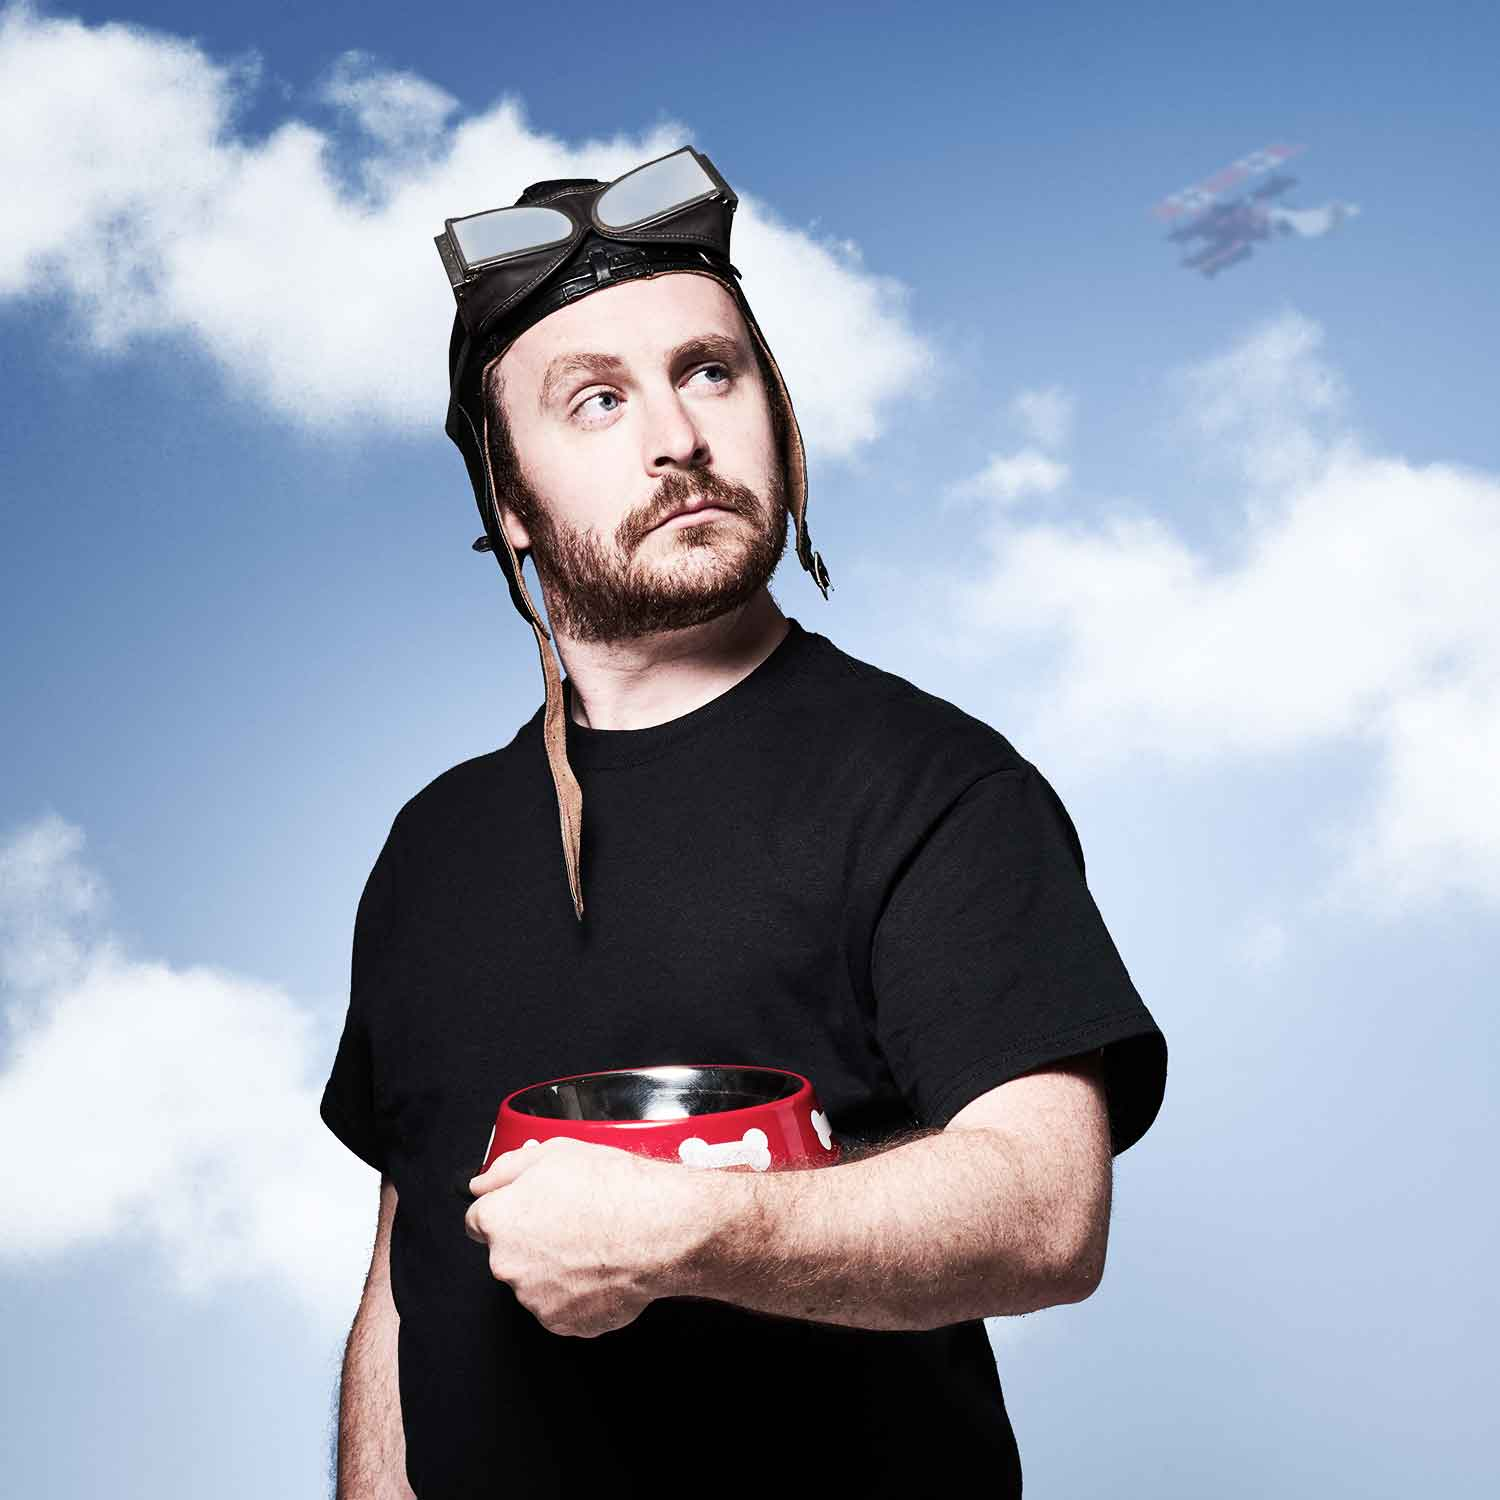 Jeff Mitchell as Snoopy